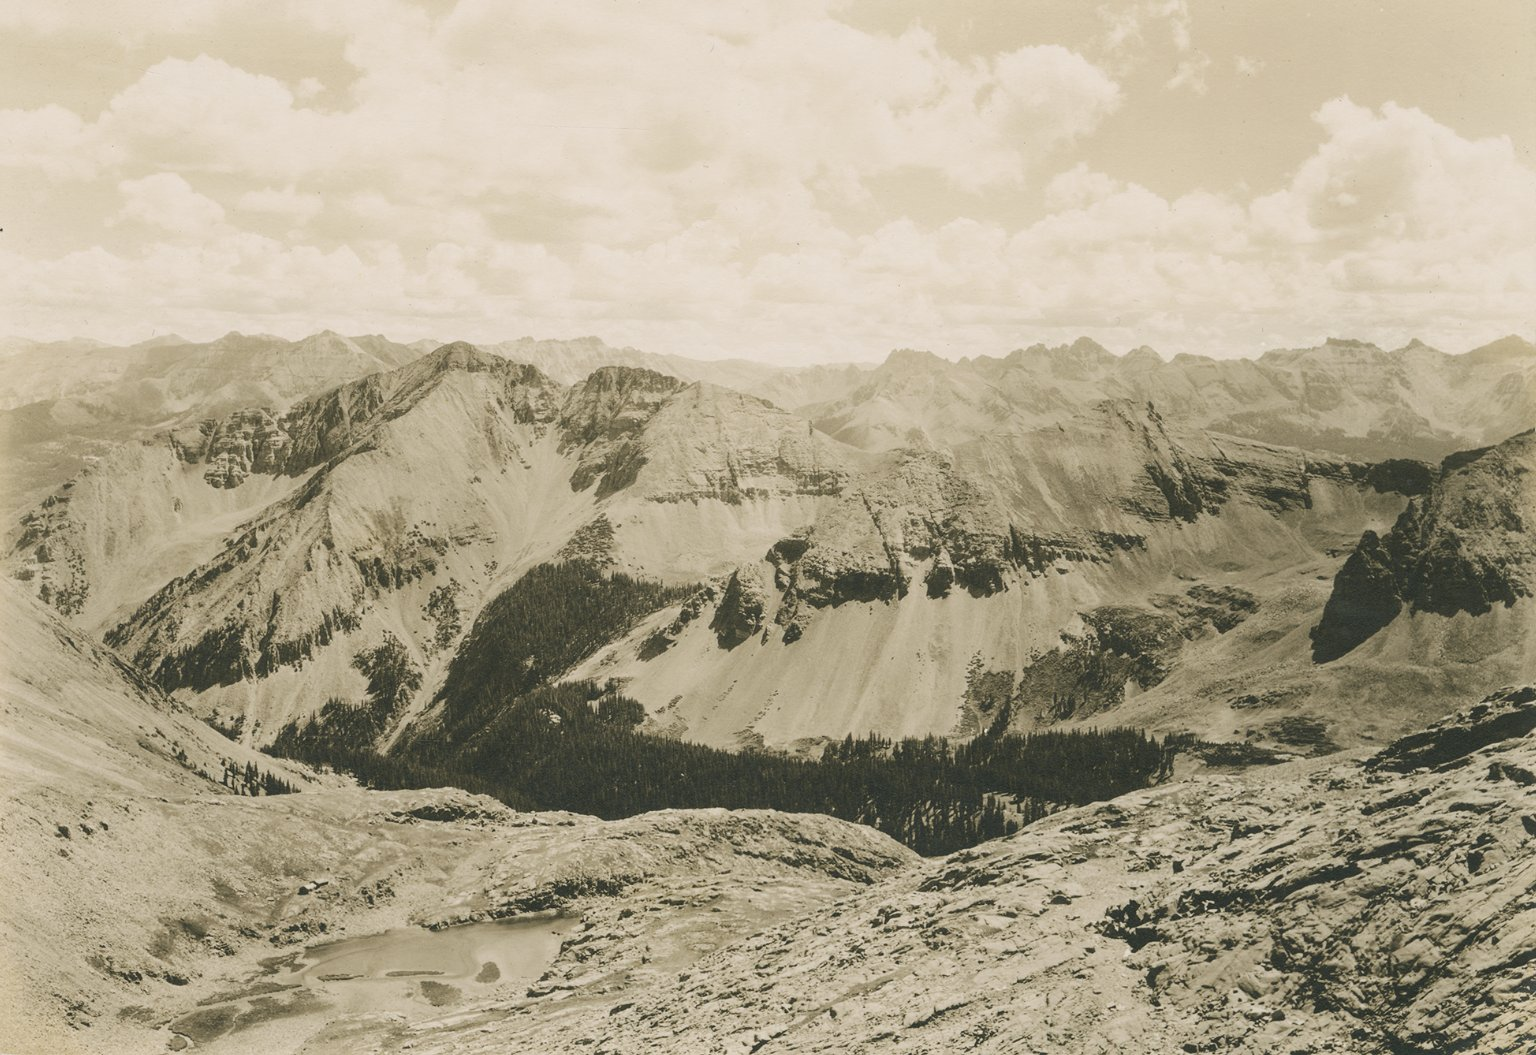 Untitled panoramic photo of several mountain ranges, with alpine lake and 2 small buildings in the middleground.